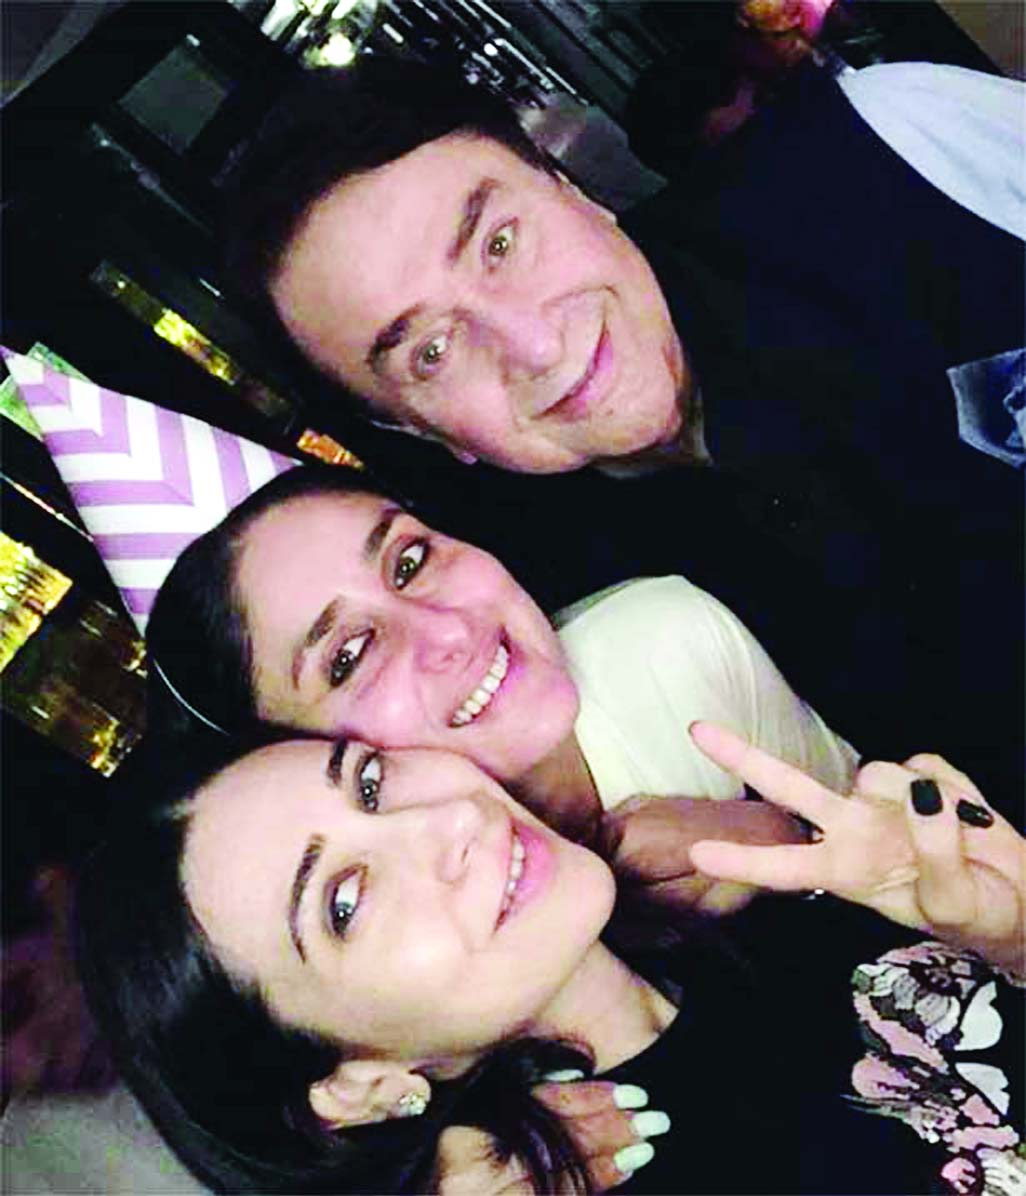 Kareena Kapoor Khan's 38th birthday celebrations